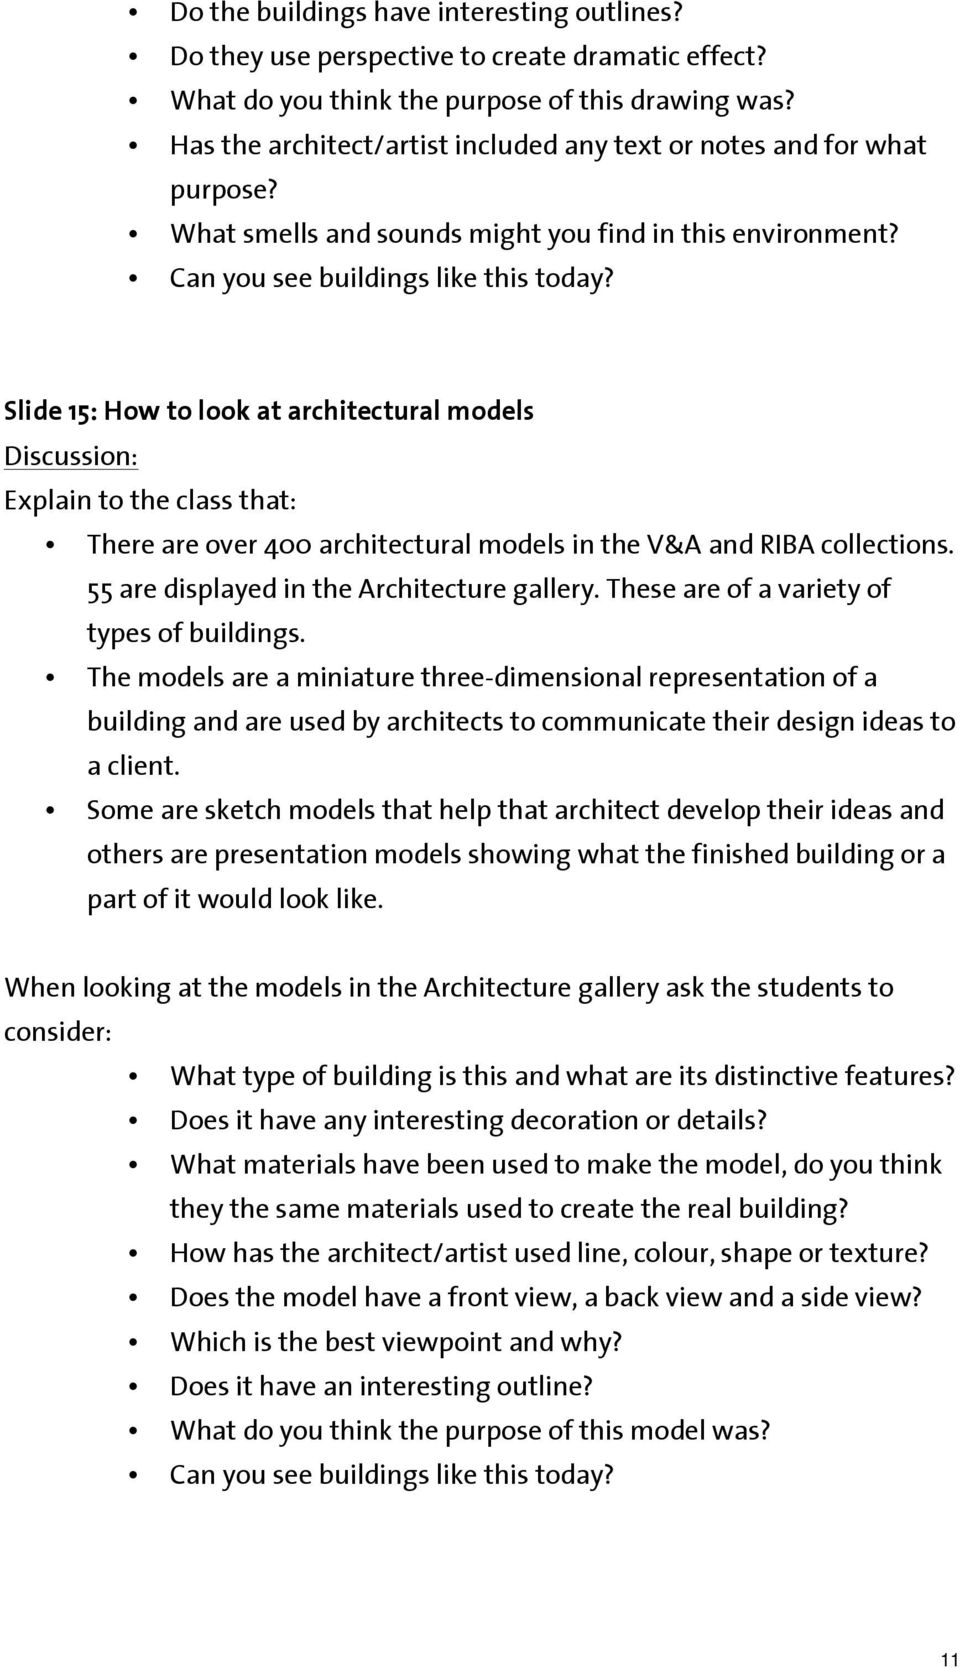 Slide 15: How to look at architectural models Explain to the class that: There are over 400 architectural models in the V&A and RIBA collections. 55 are displayed in the Architecture gallery.